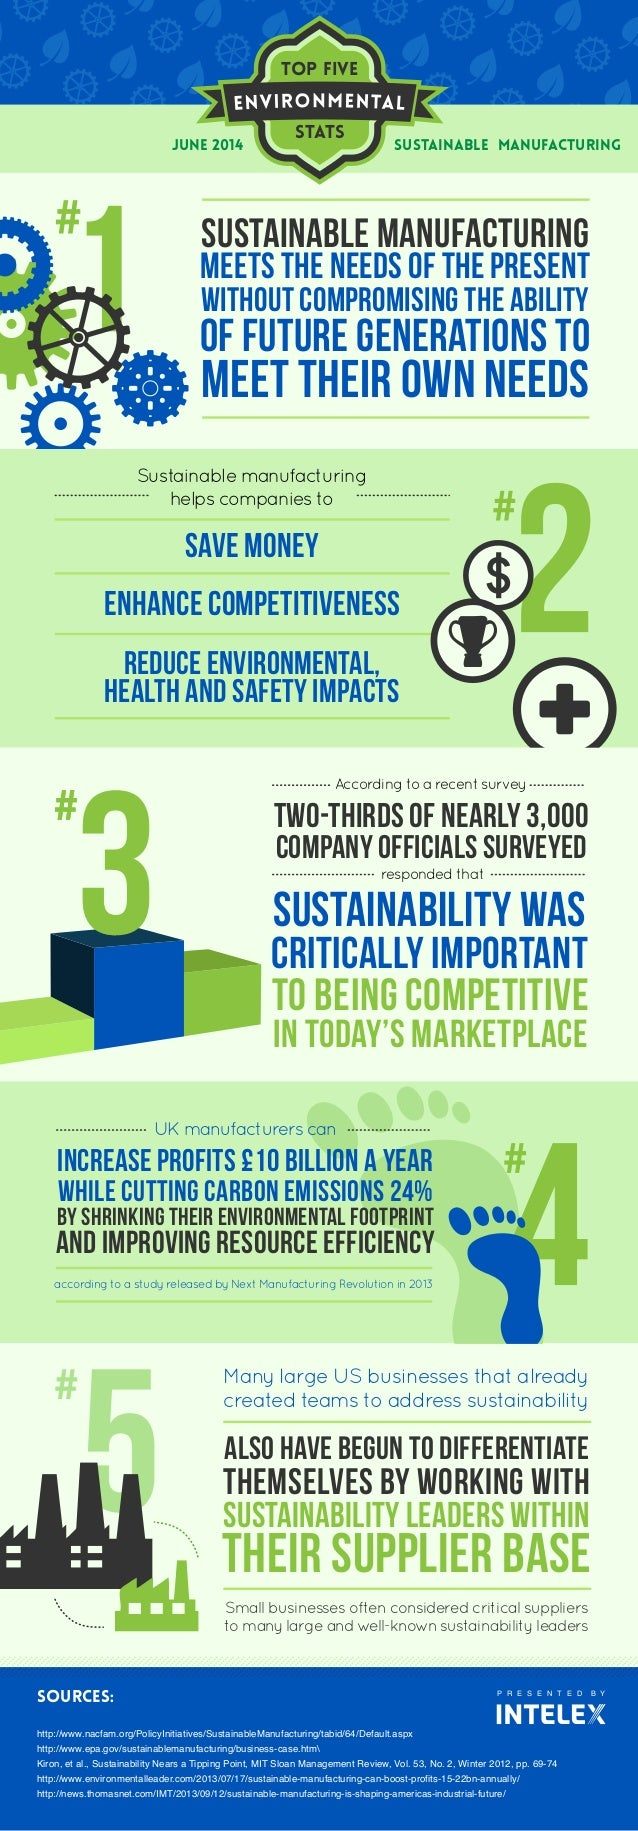 Top five Stats P R E S E N T E D B Y SOURCES: http://www.nacfam.org/PolicyInitiatives/SustainableManufacturing/tabid/64/De...